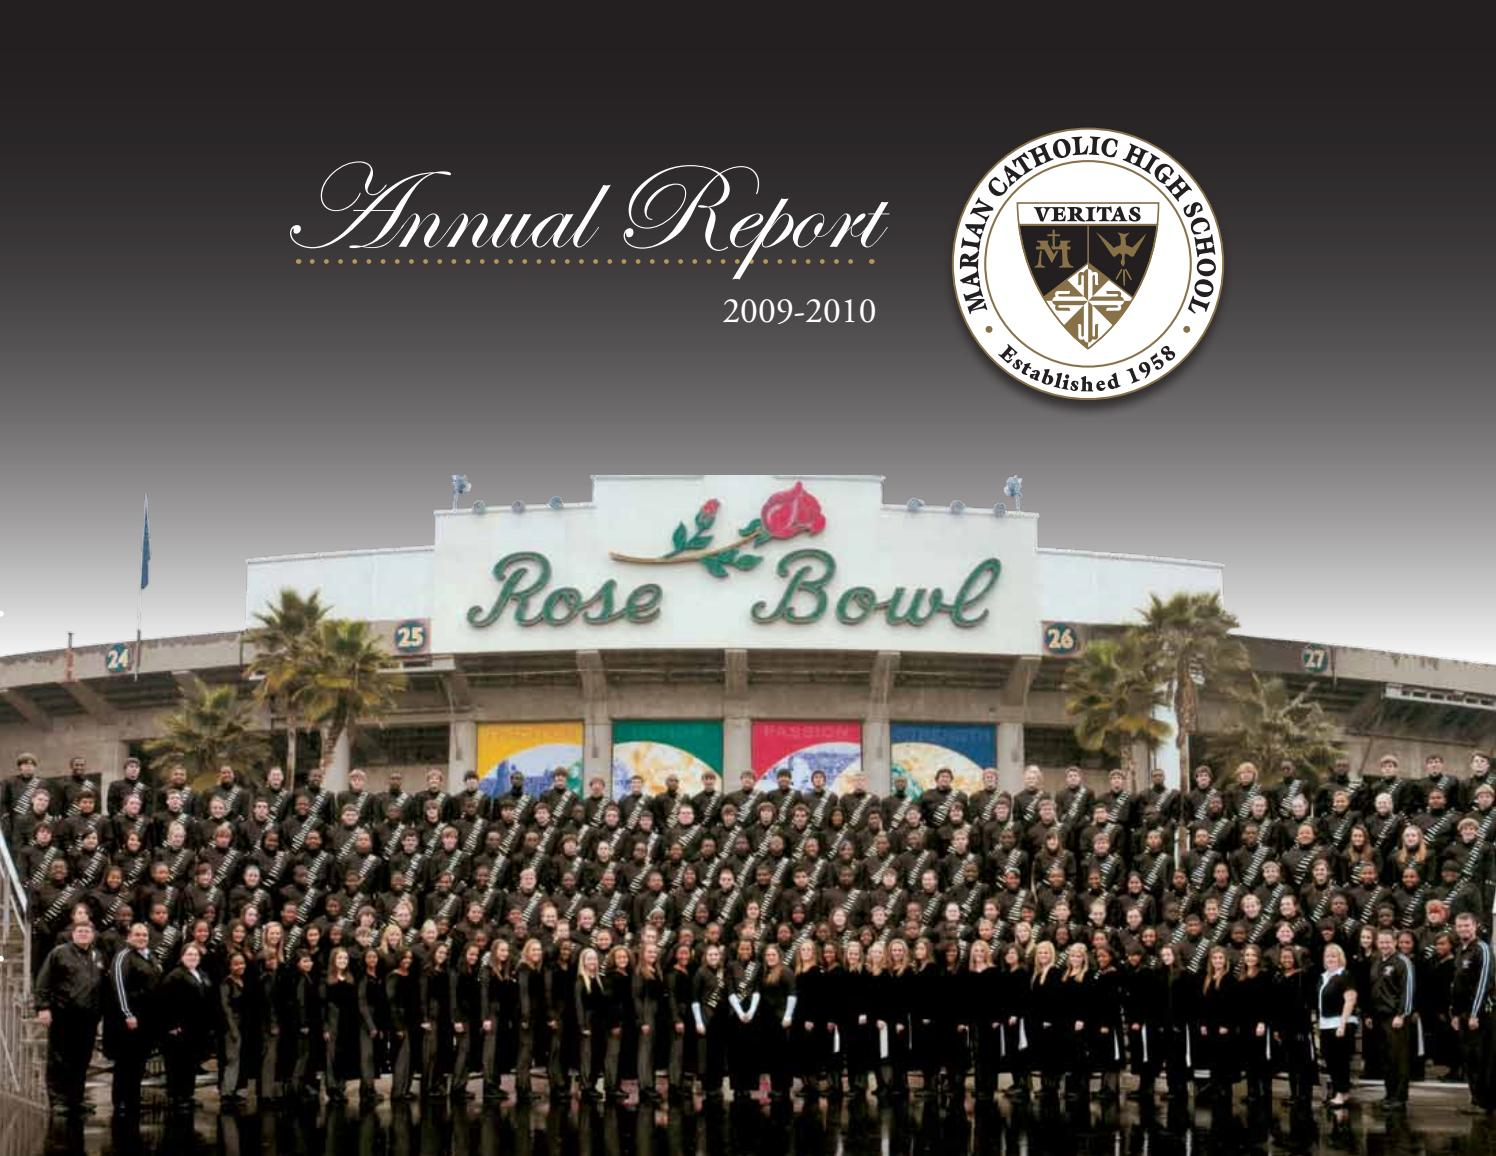 Annual Report 2009 2010 By Marian Catholic High School Issuu